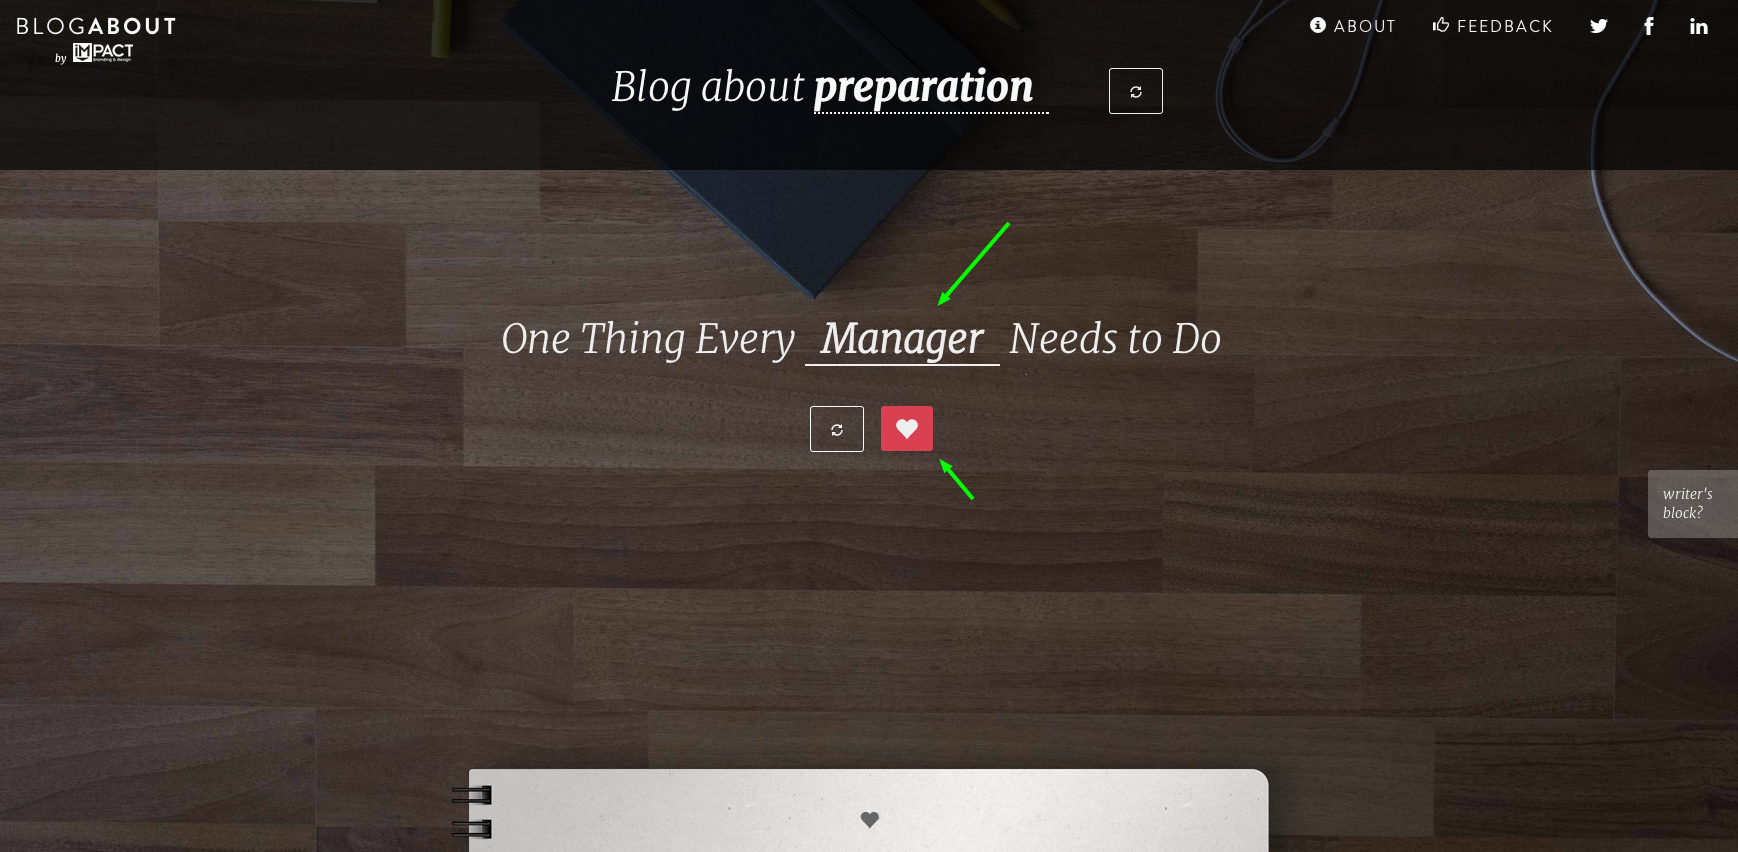 generate-more-blog-topics-blogabout